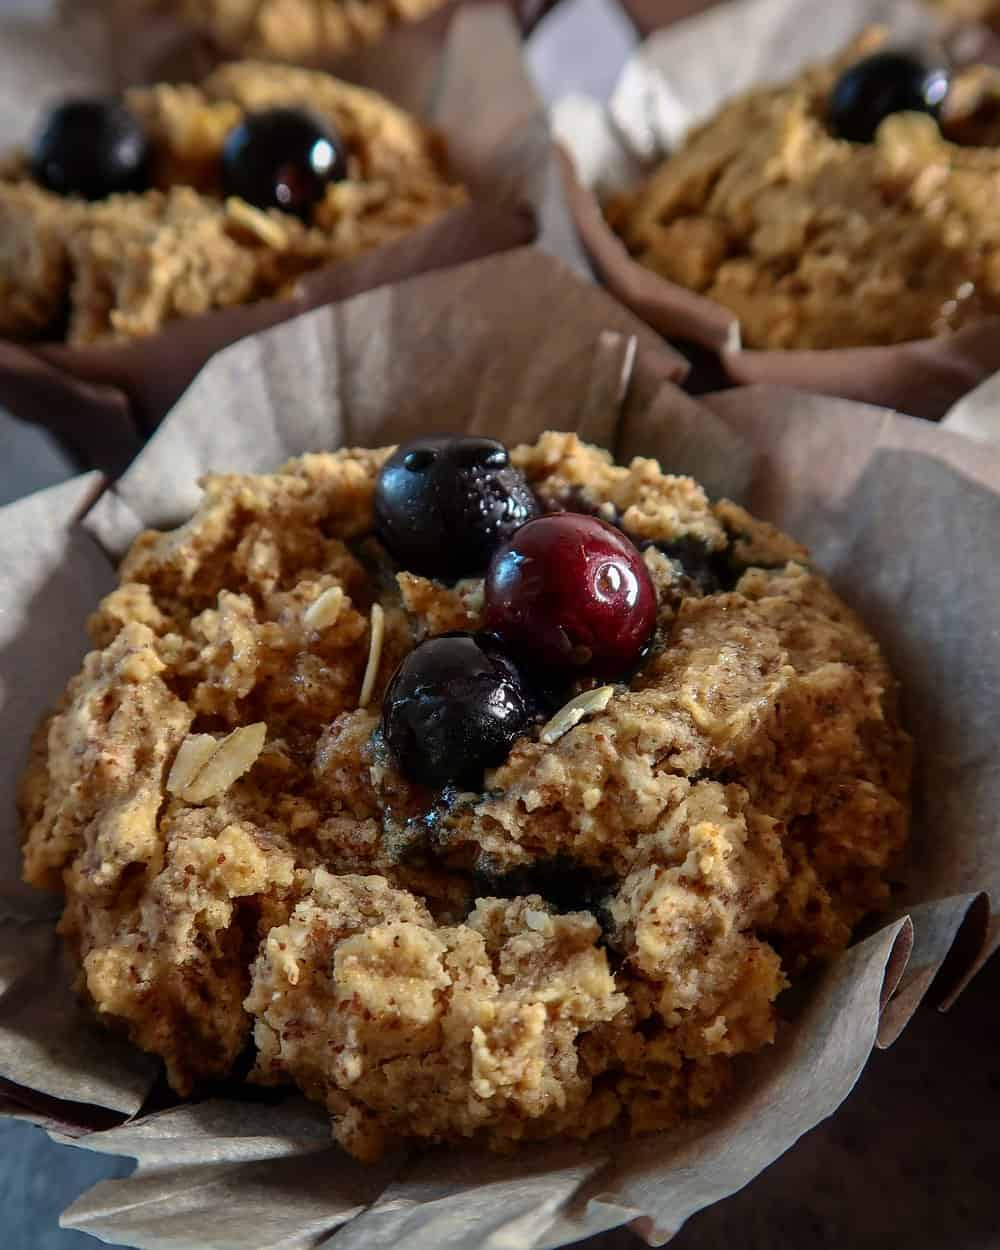 BLUEBERRY OATMEAL MUFFINS - INGREDIENTS1 1/4 cup almond flour 1 cup gluten free rolled oats 3/4 cup gluten free flour (I use Bob's Red Mill 1:1 gluten free flour but any flour should work)1 cup non dairy milk (i use almond milk)1/2 cup maple syrup 2 tsp vanilla extract1/4 cup coconut oil, melted and cooled (avocado oil works well too!)2 tsp baking powder1/4 tsp baking sodapinch of sea salt1 cup fresh blueberries